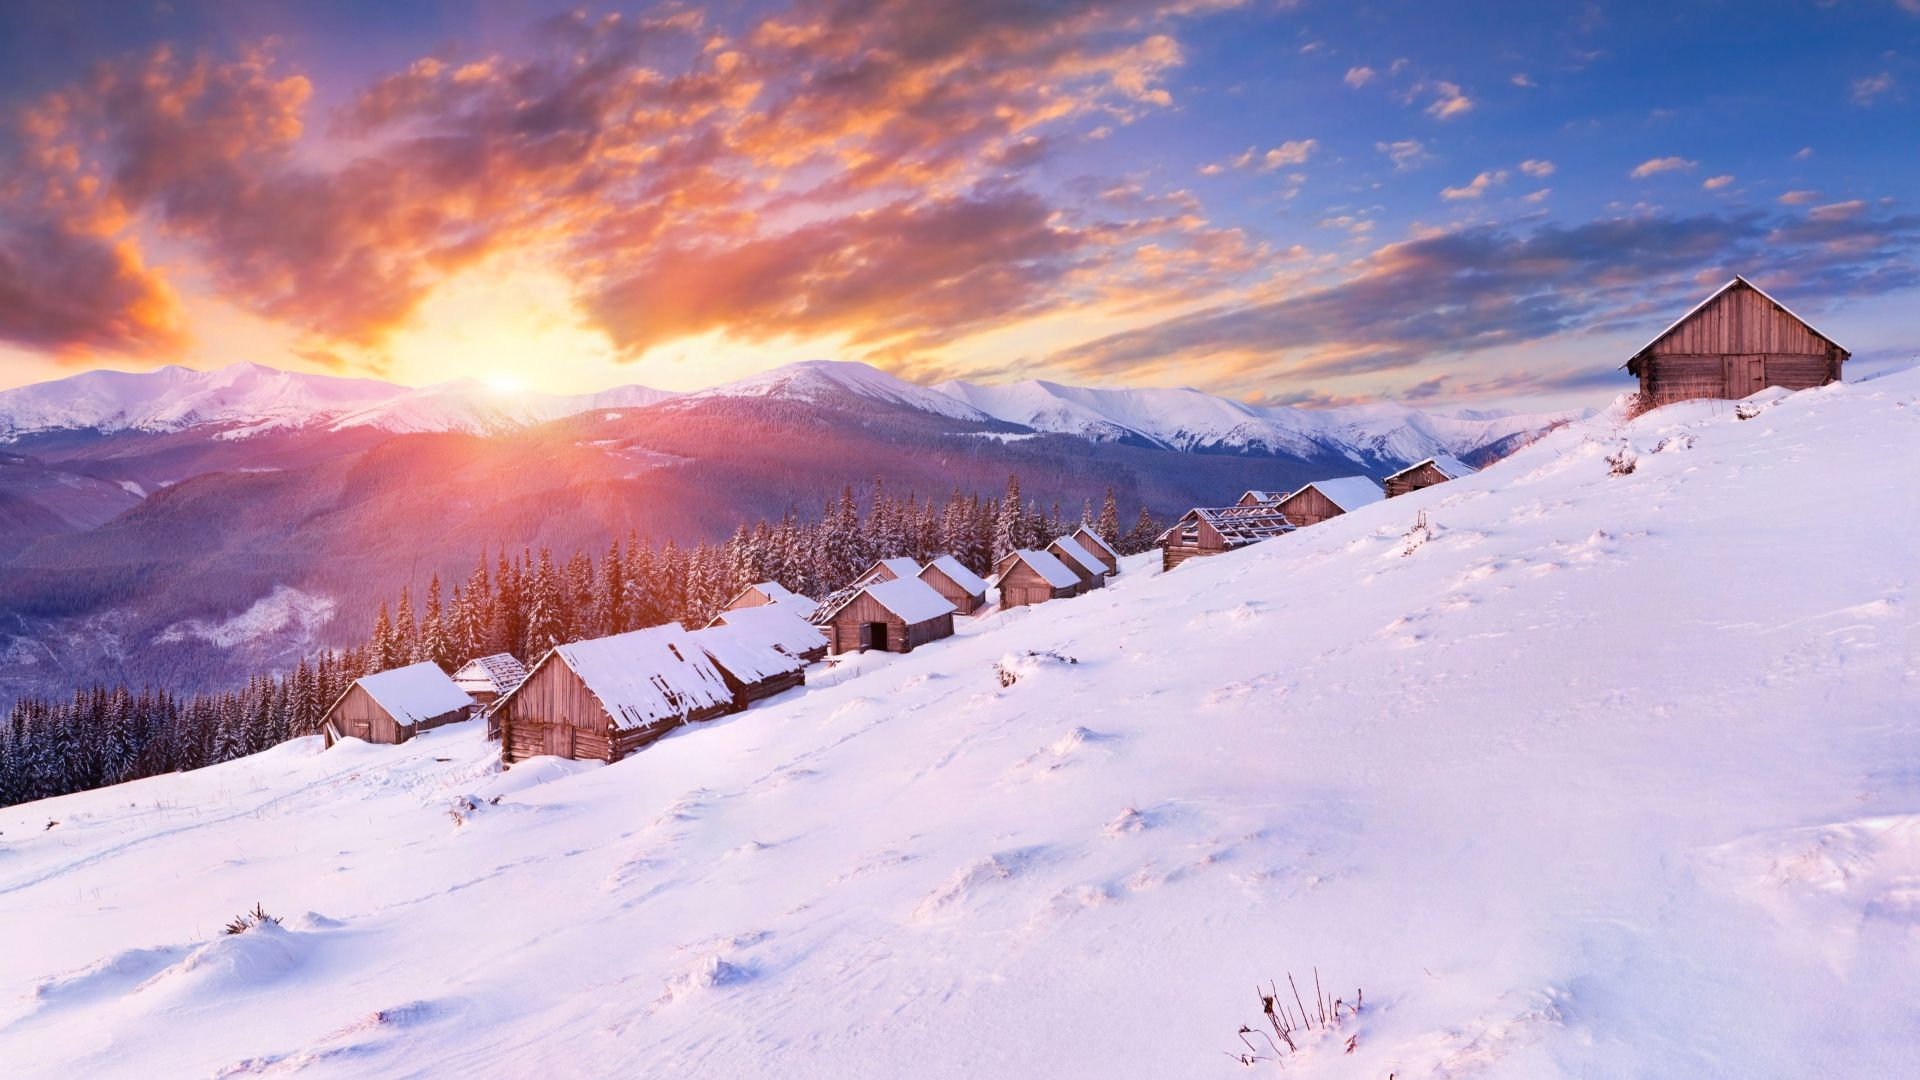 Горы, 5k, 4k, холмы, закат, снег, зима, дом, Mountains, 5k, 4k wallpaper, hills, sunset, snow, winter, house